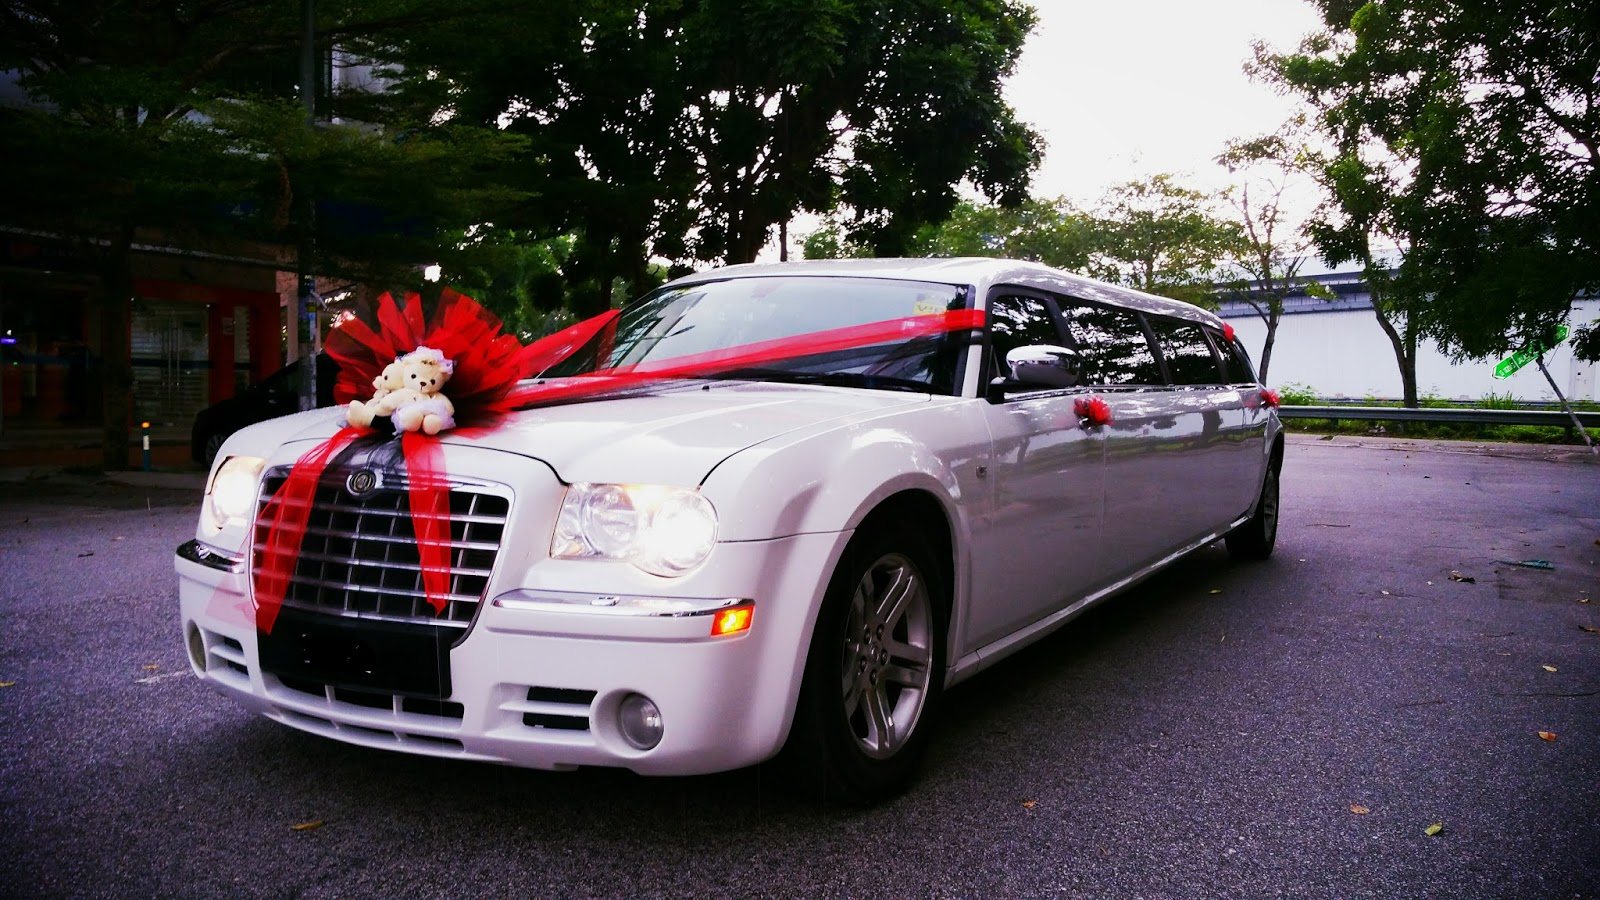 RedOrca Malaysia Wedding and Event Car Rental: Chrysler 300 ...